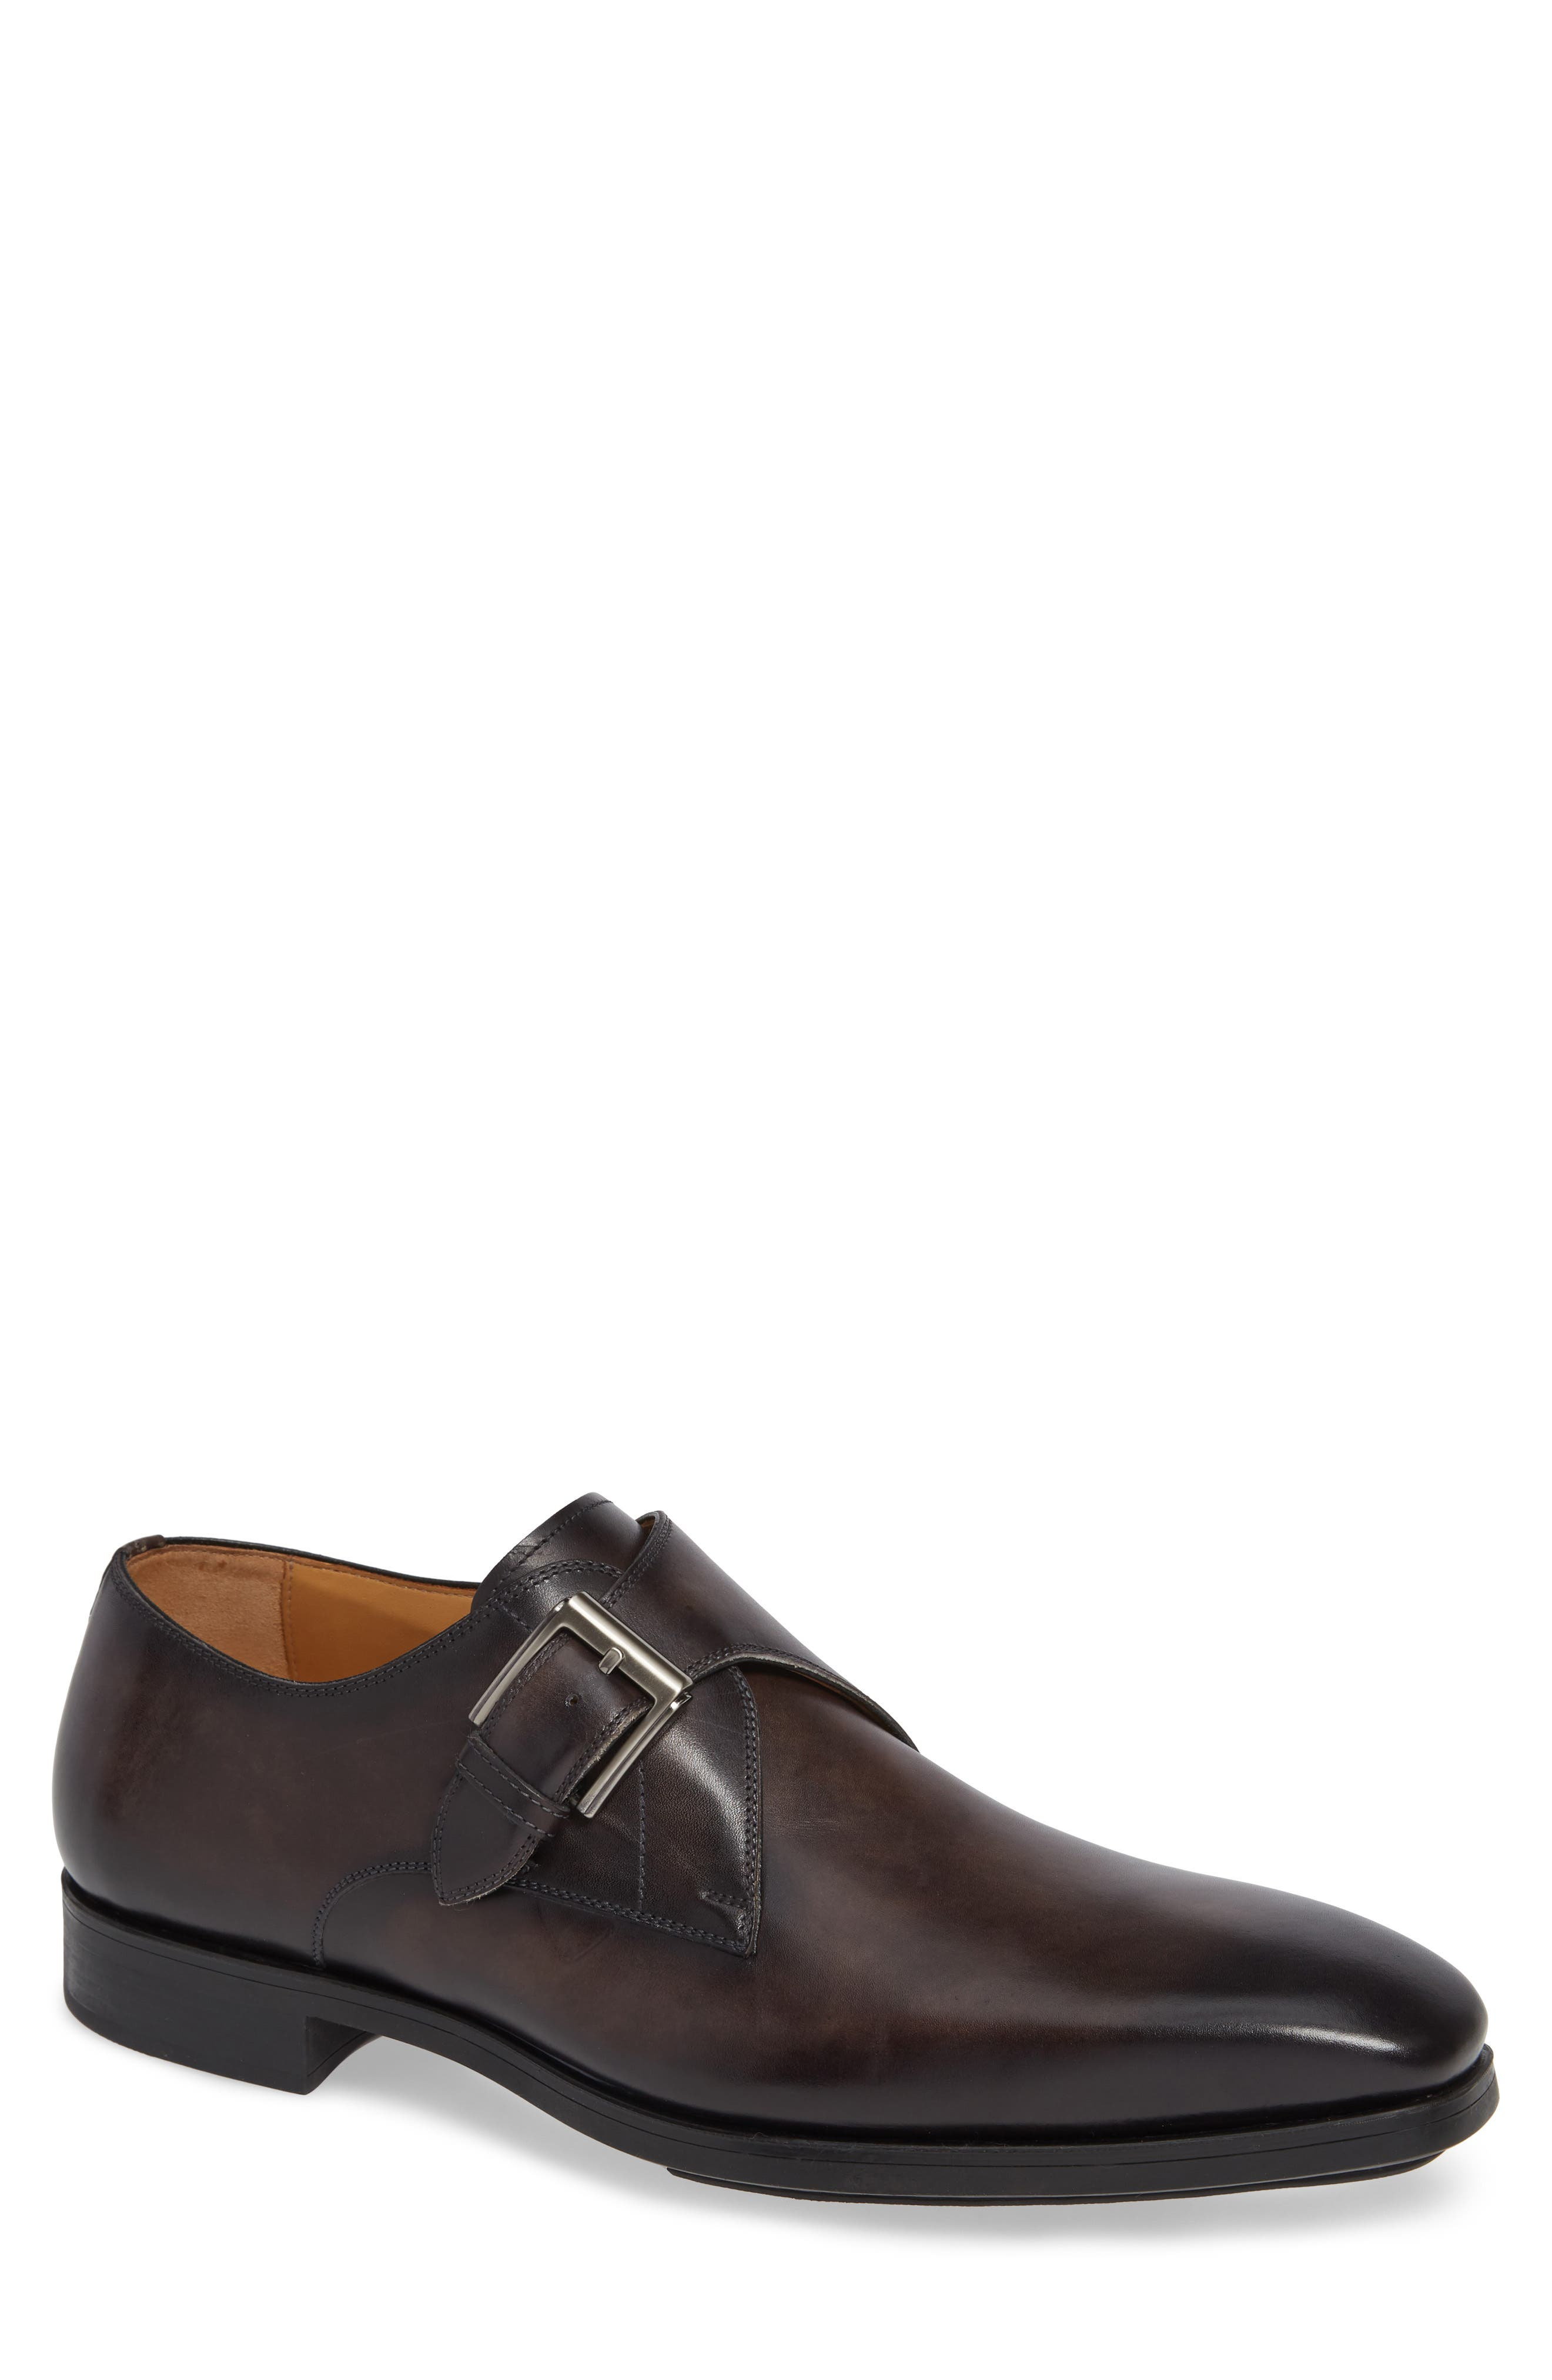 Roddy Monk Strap Shoe,                         Main,                         color, GREY LEATHER